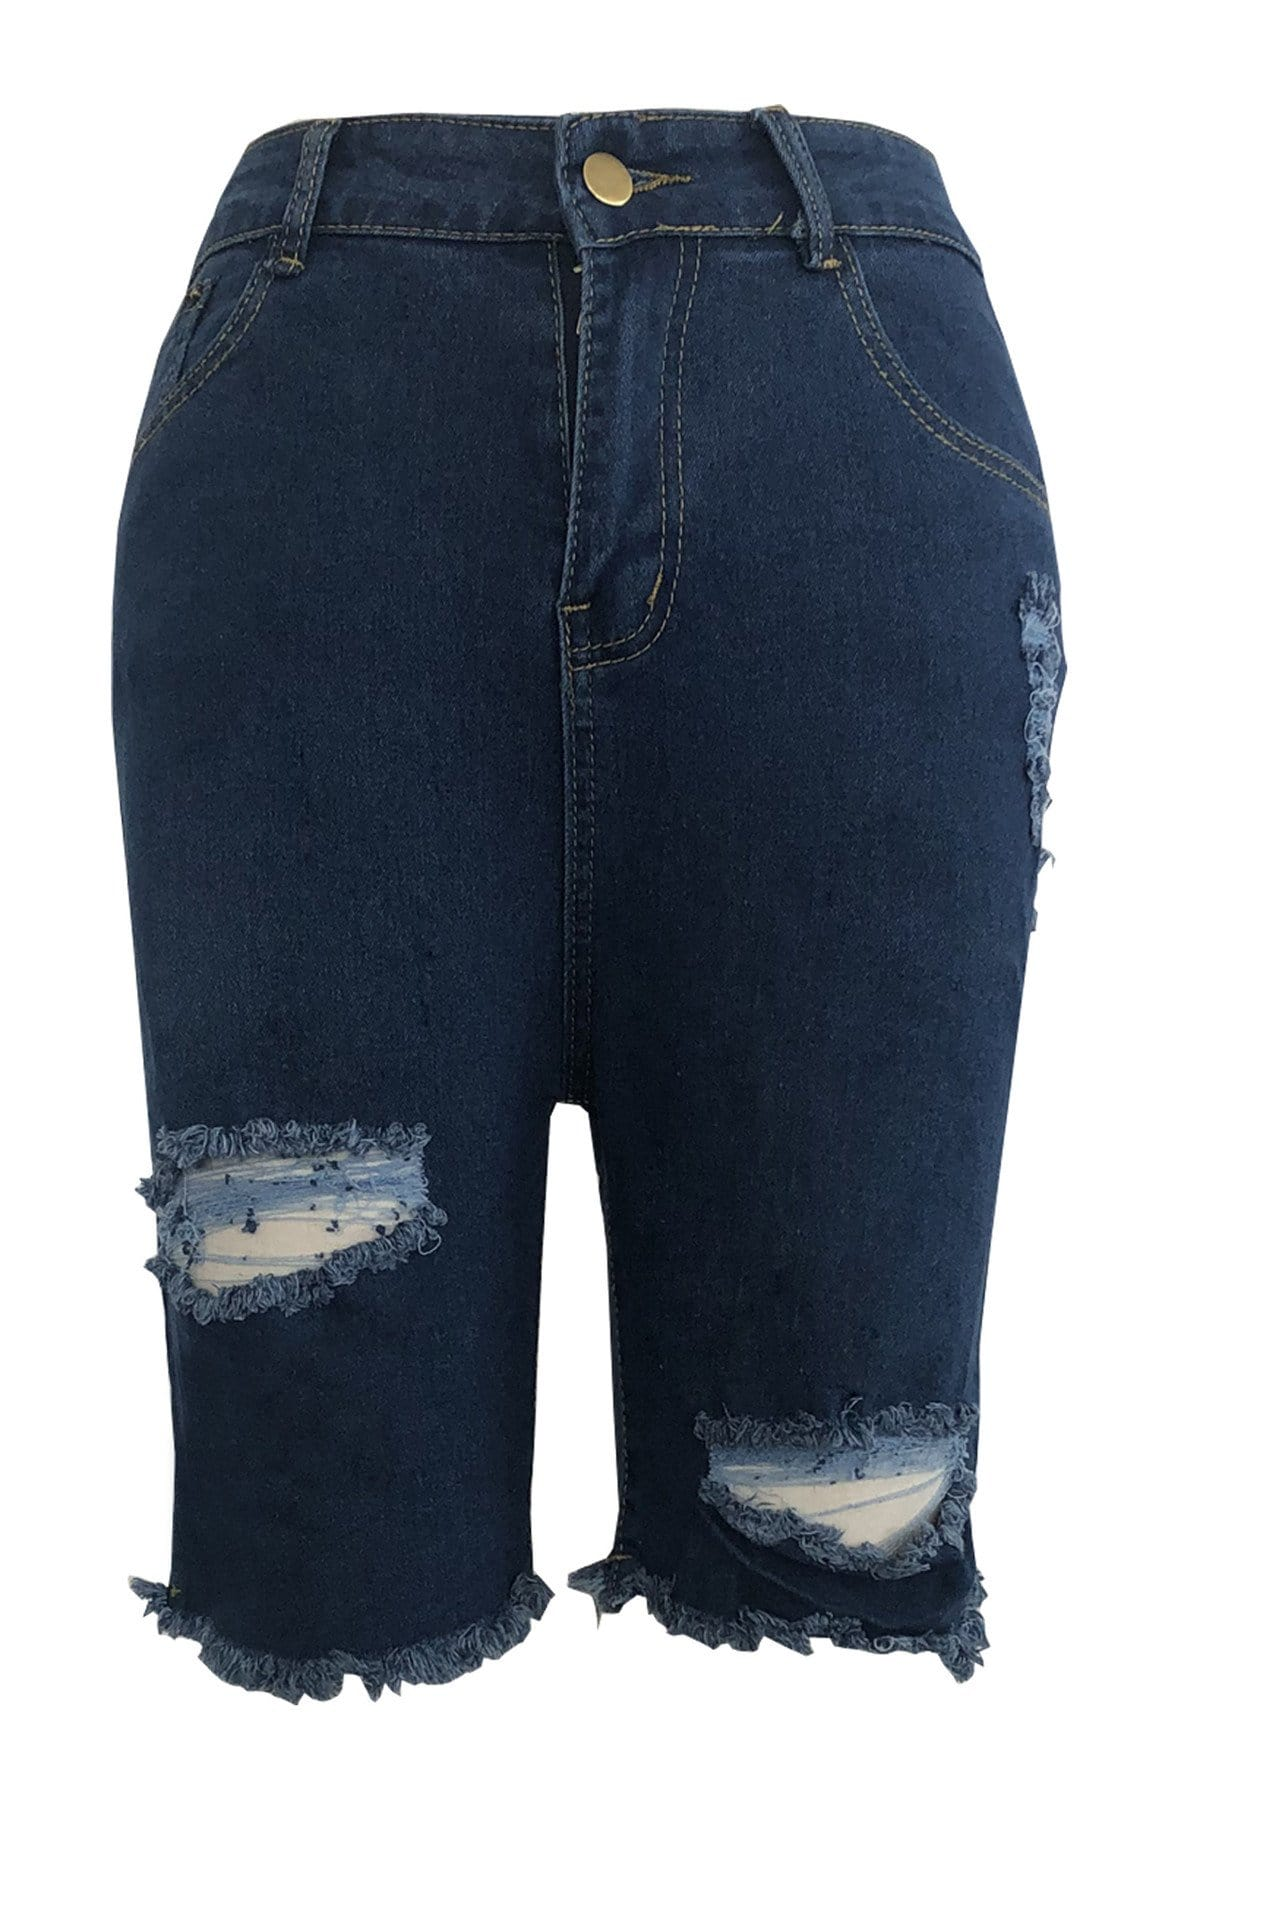 Fashion High Waist Stretch Hole Jeans - VogueRegion